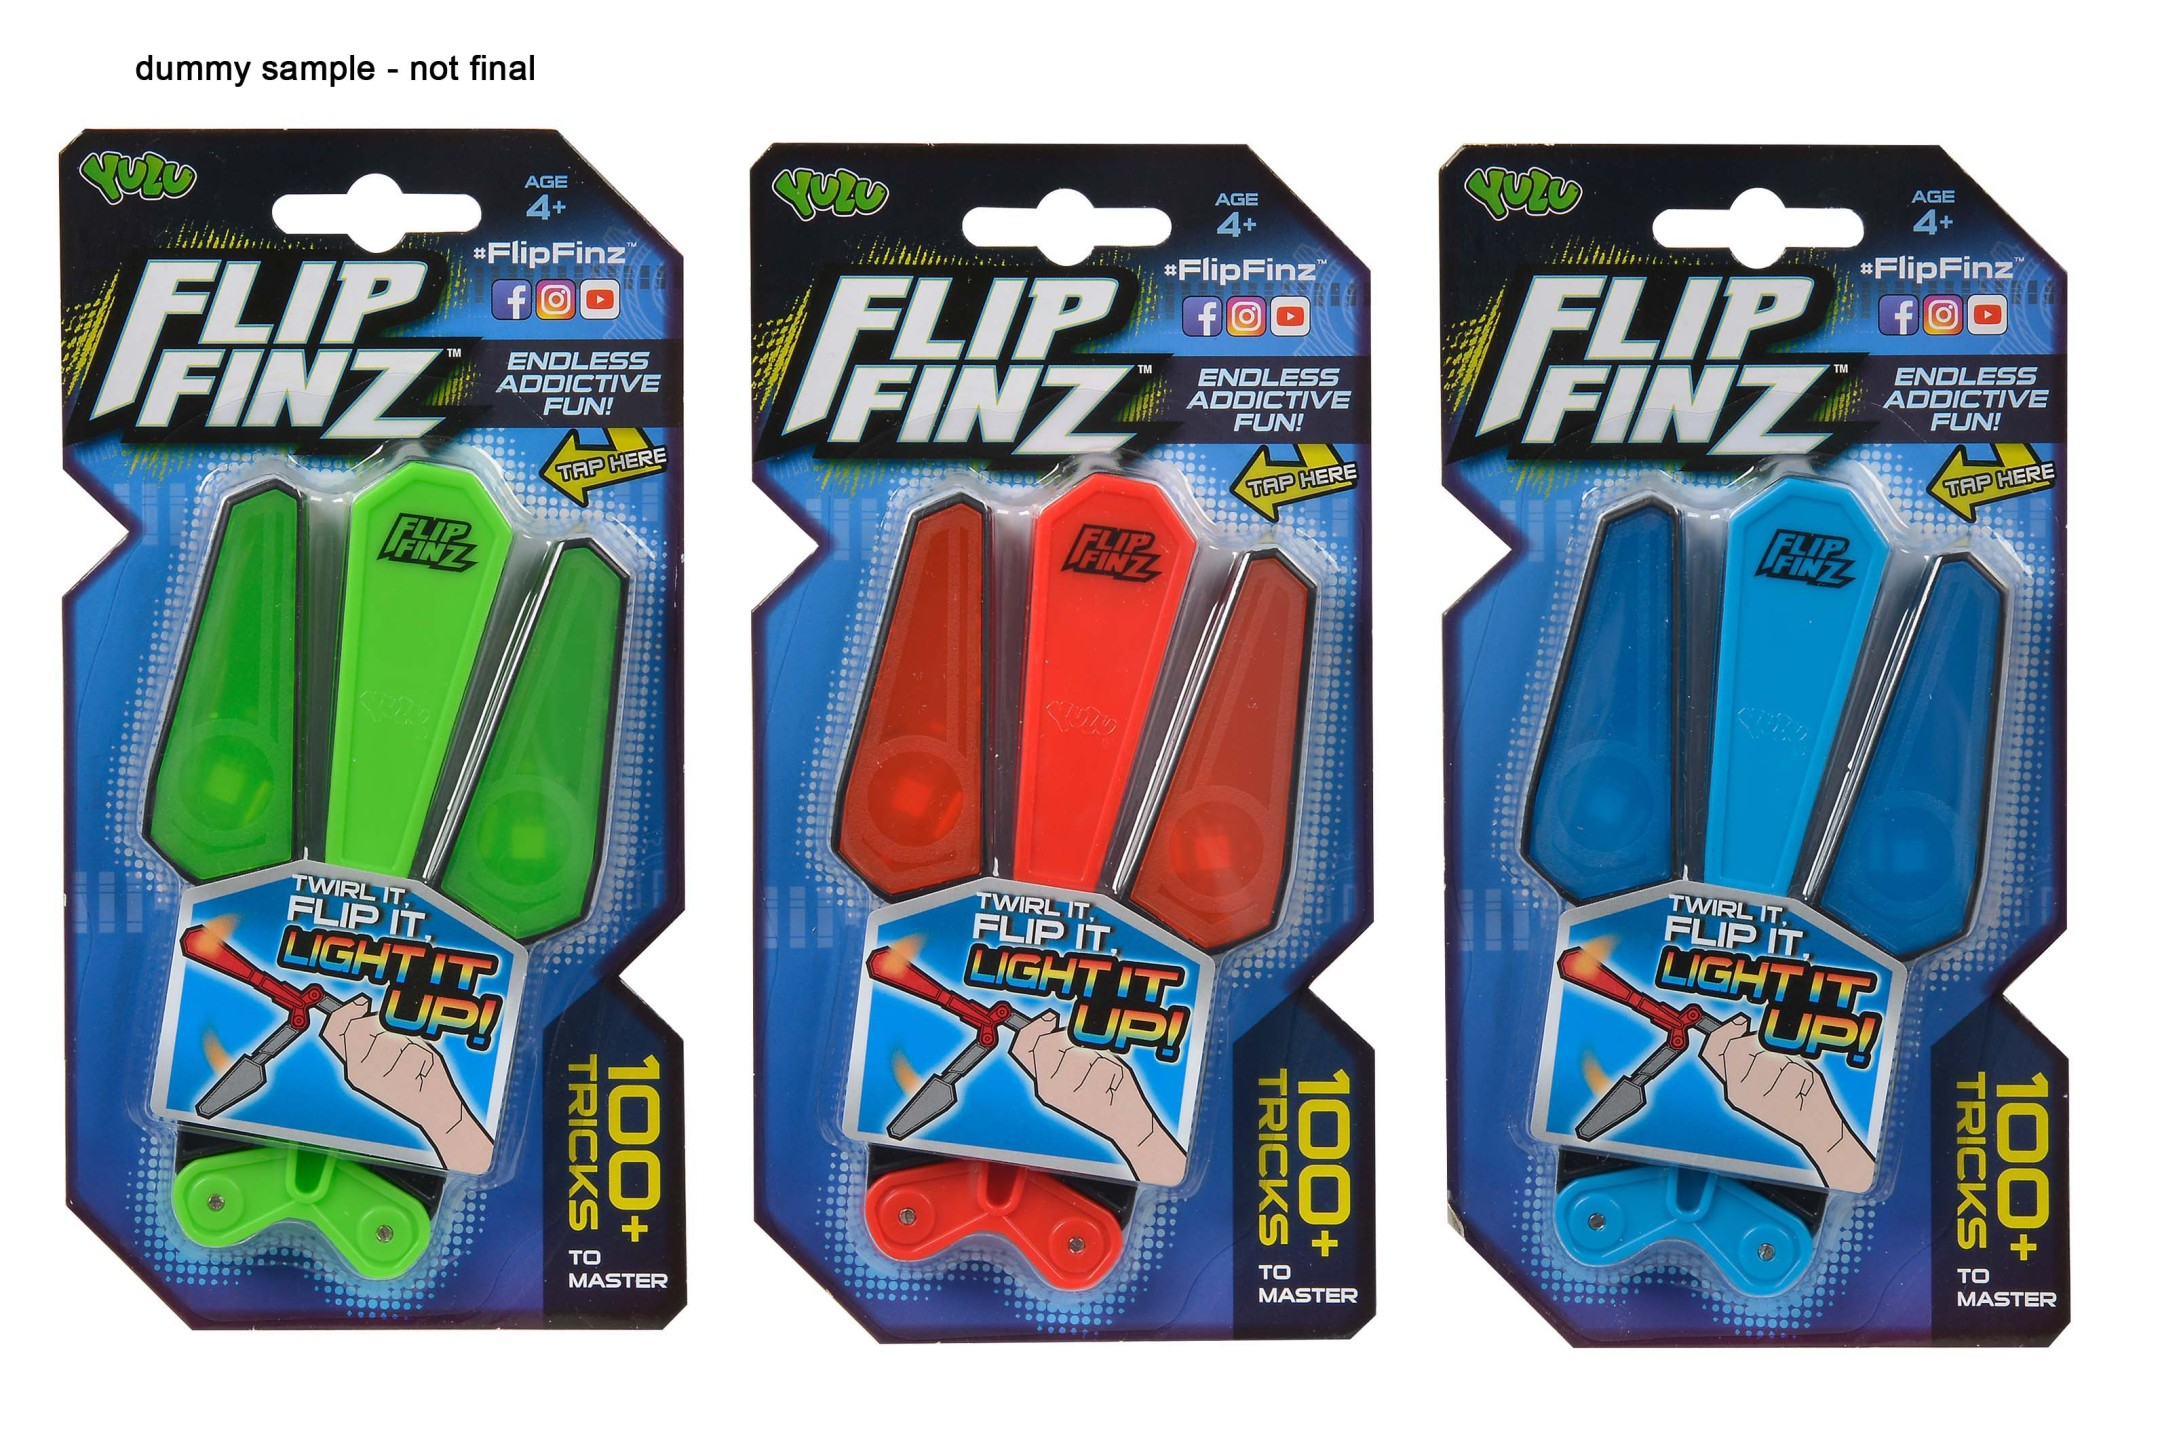 Flip Finz Light Up 3fs